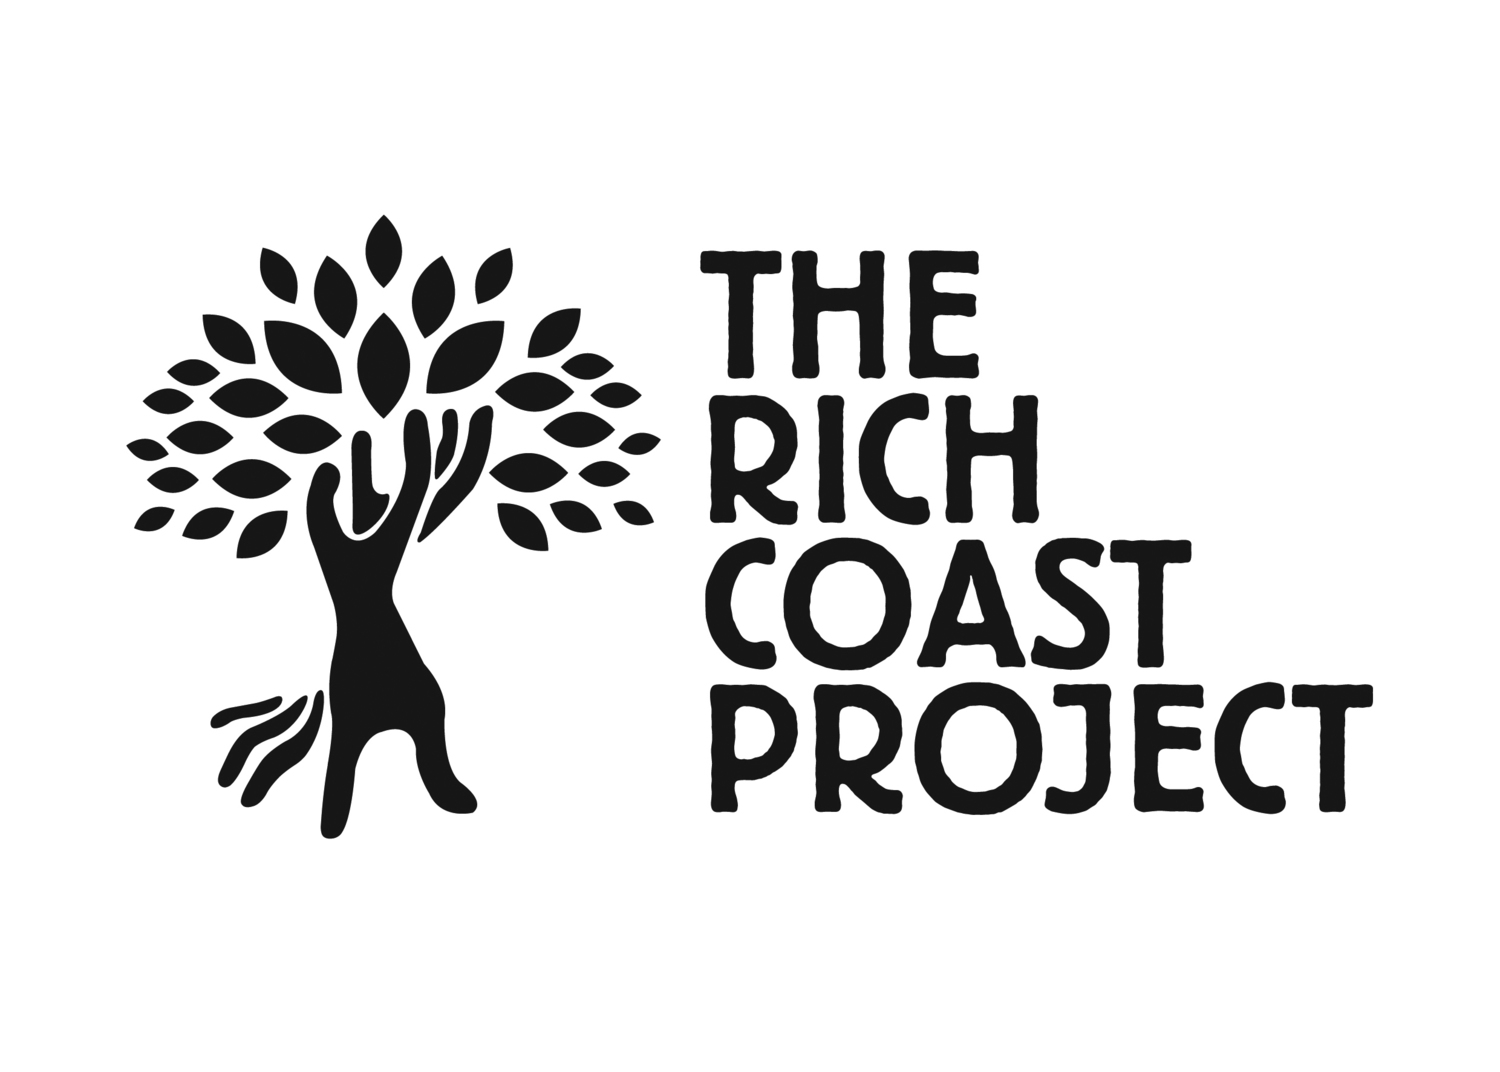 The Rich Coast Project